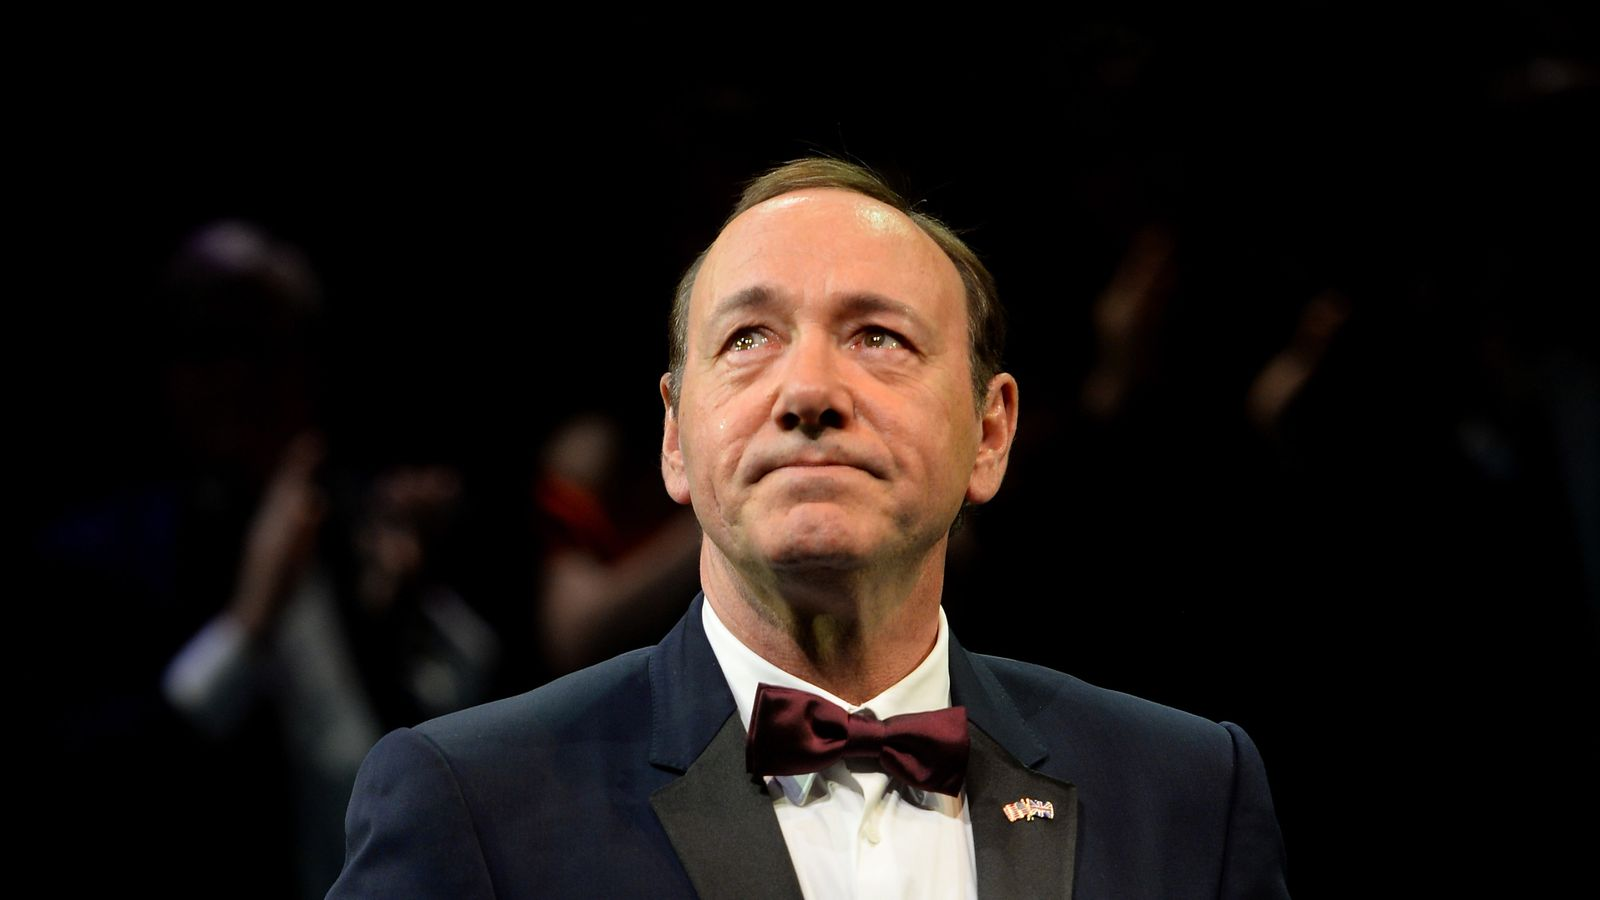 Charged with harassment Kevin Spacey admitted that he is gay 10/30/2017 54